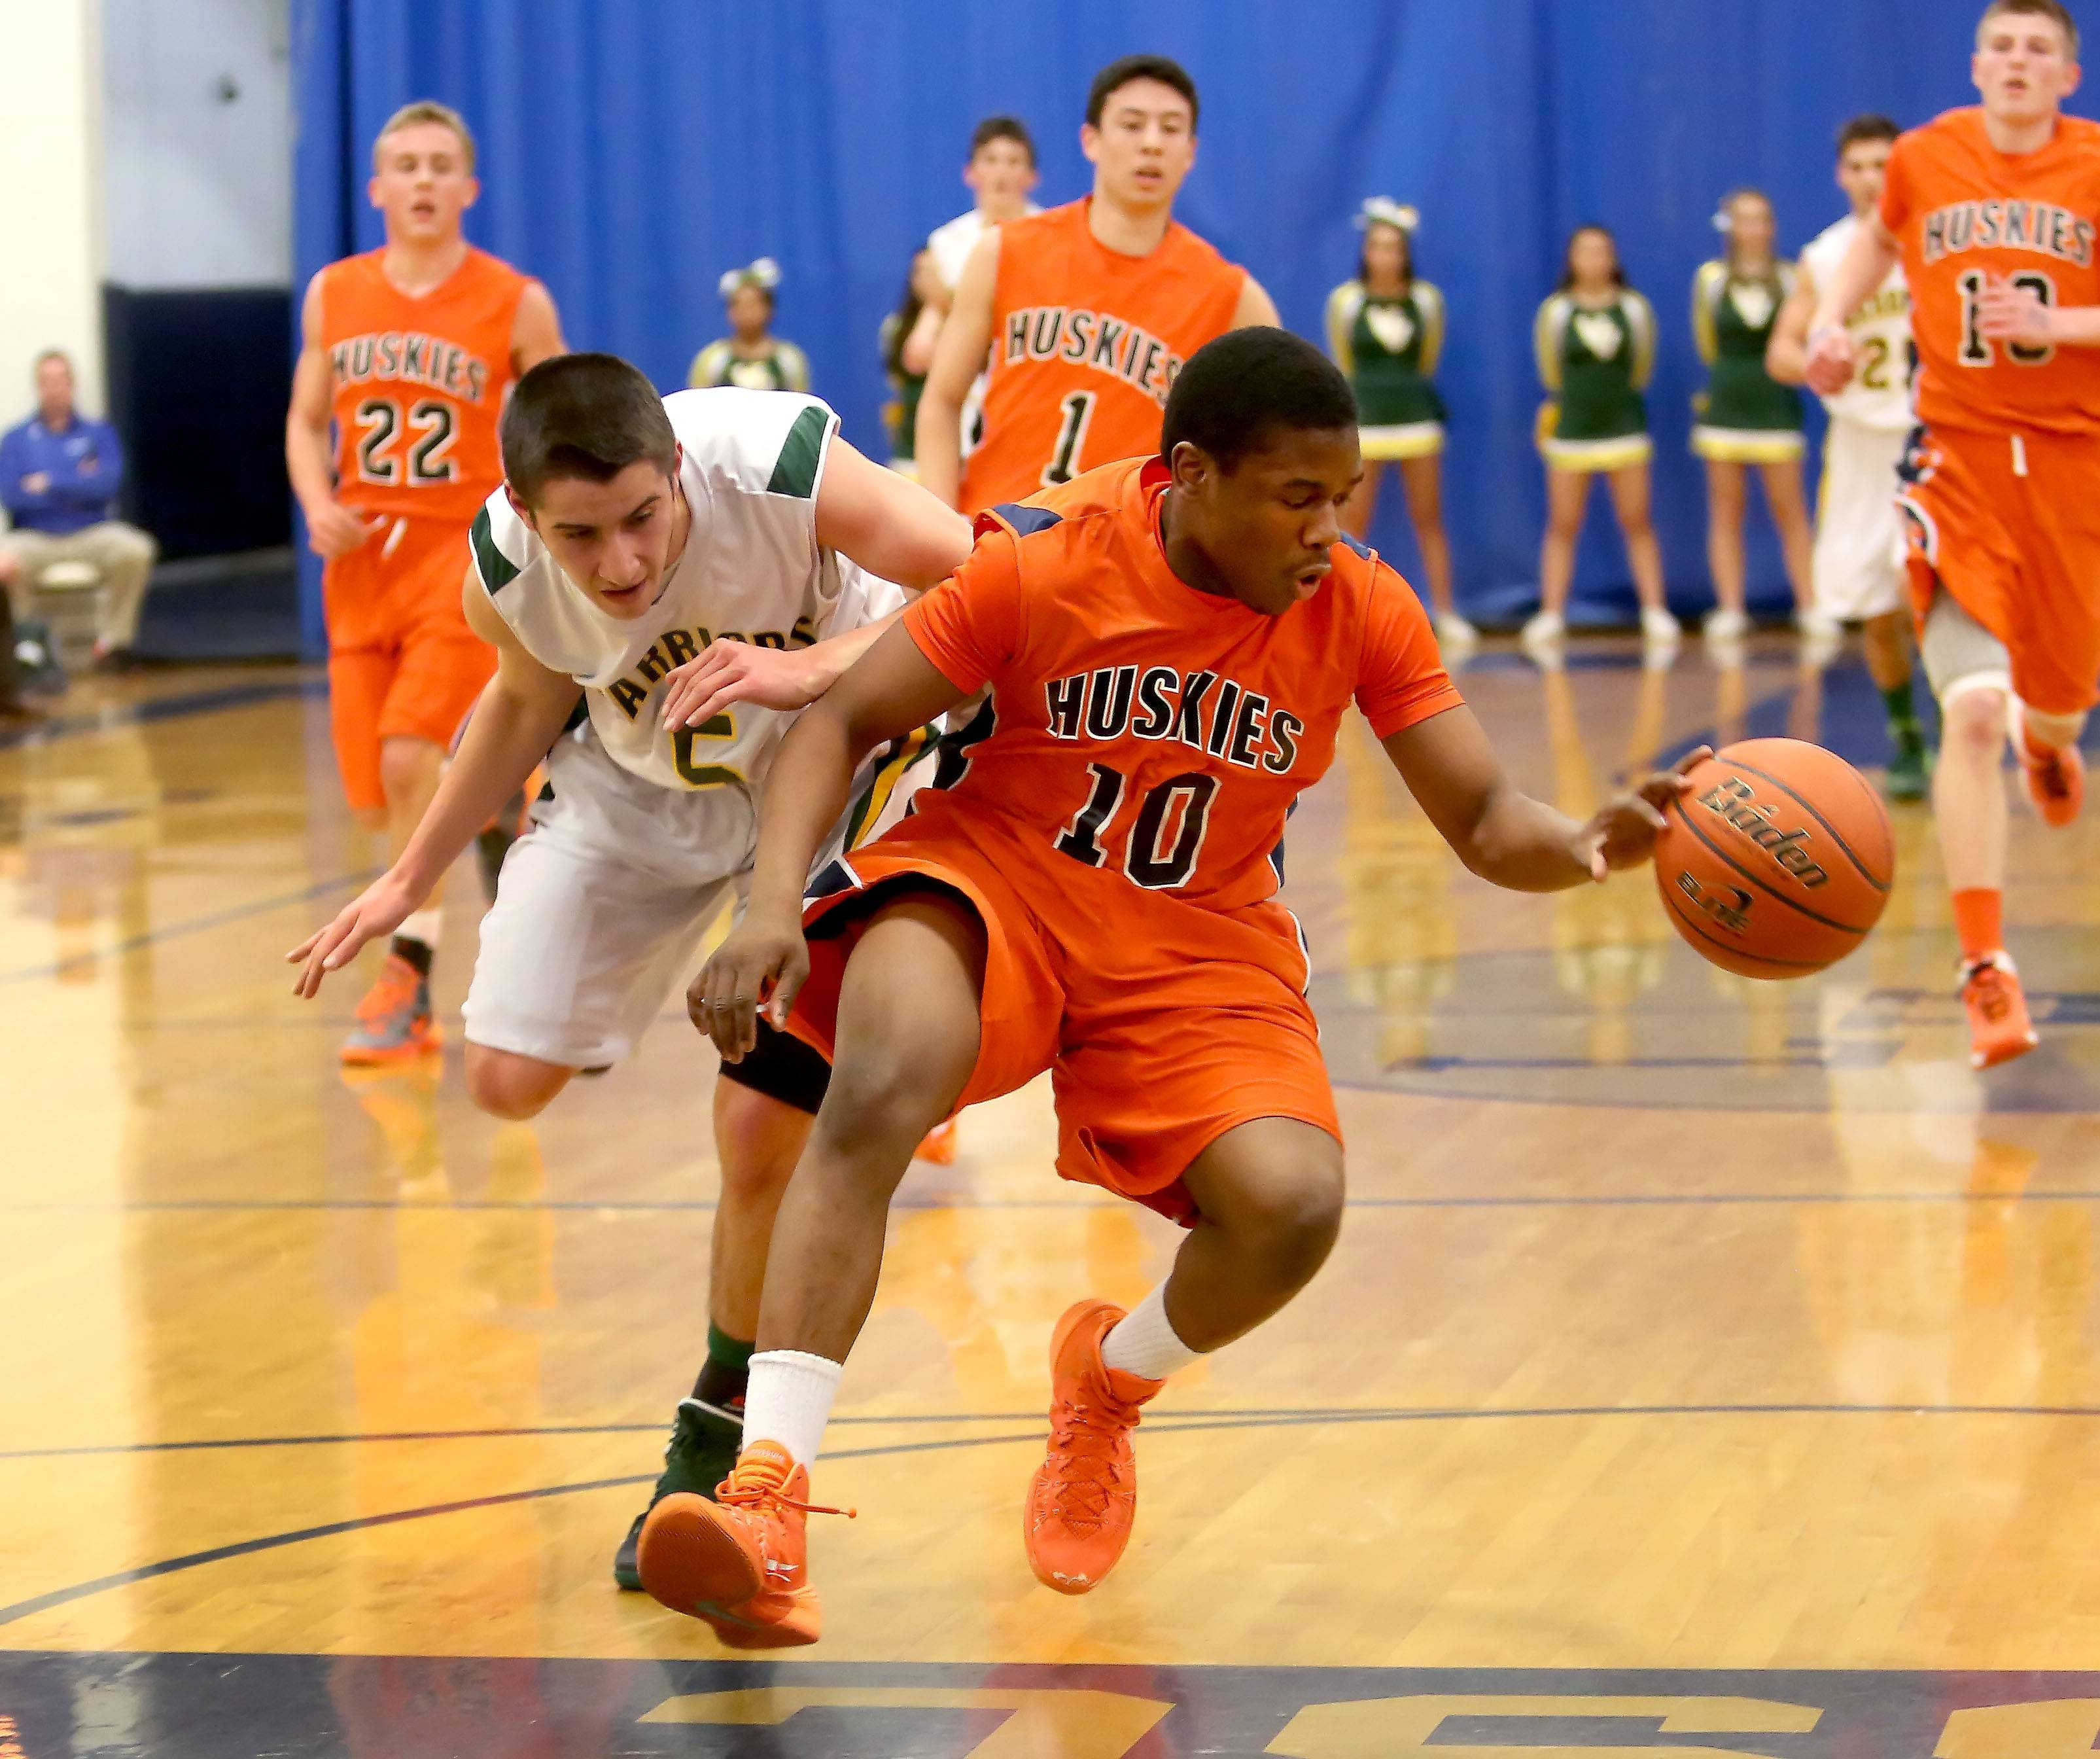 Images: Naperville North vs. Waubonsie Valley boys basketball.